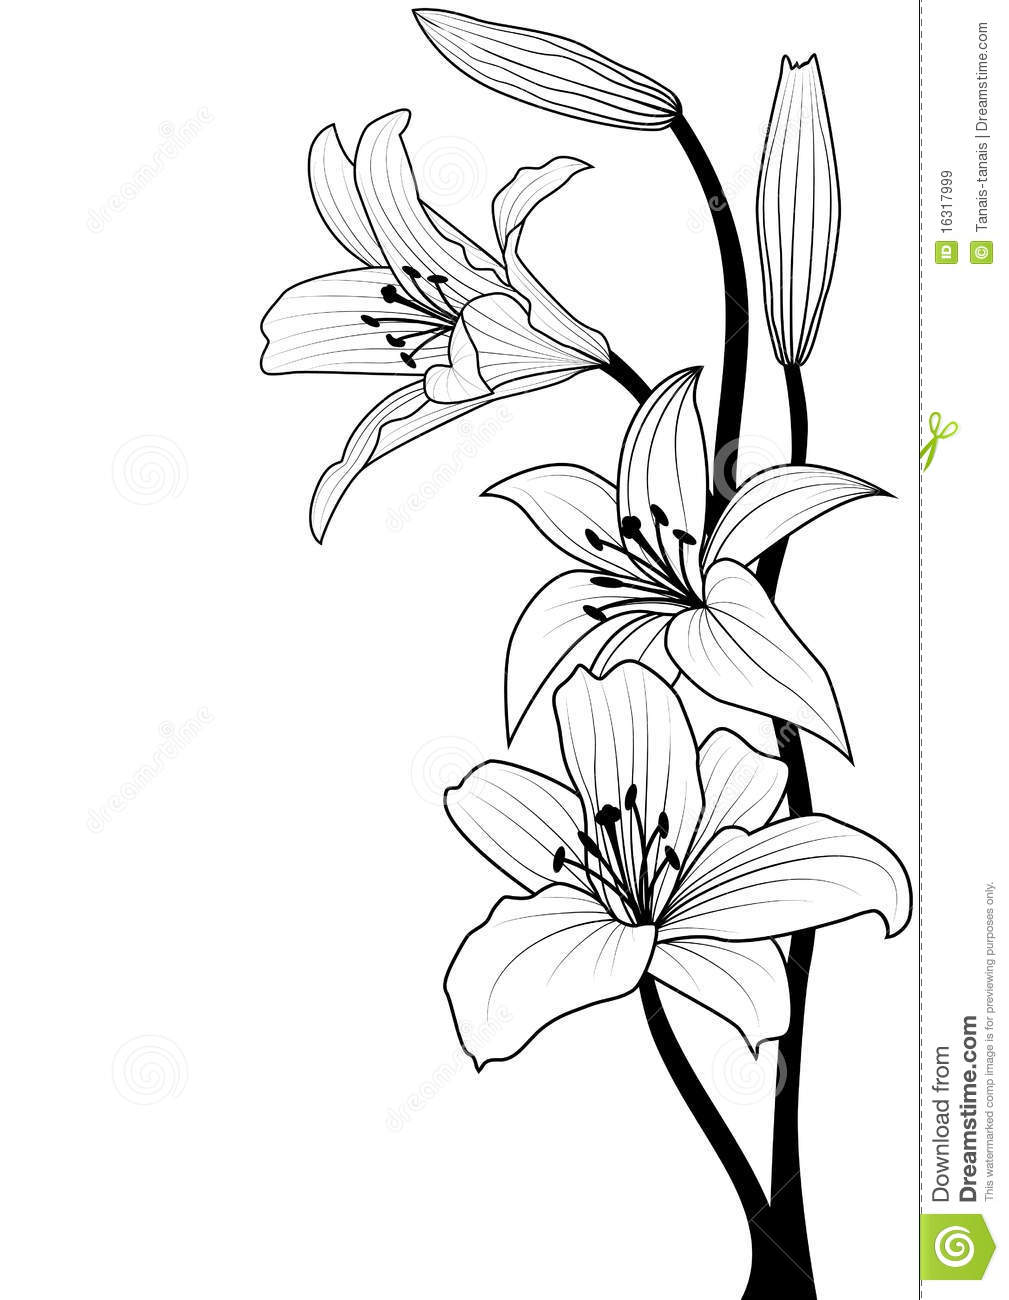 Line Drawing Lily : Lily royalty free stock images image